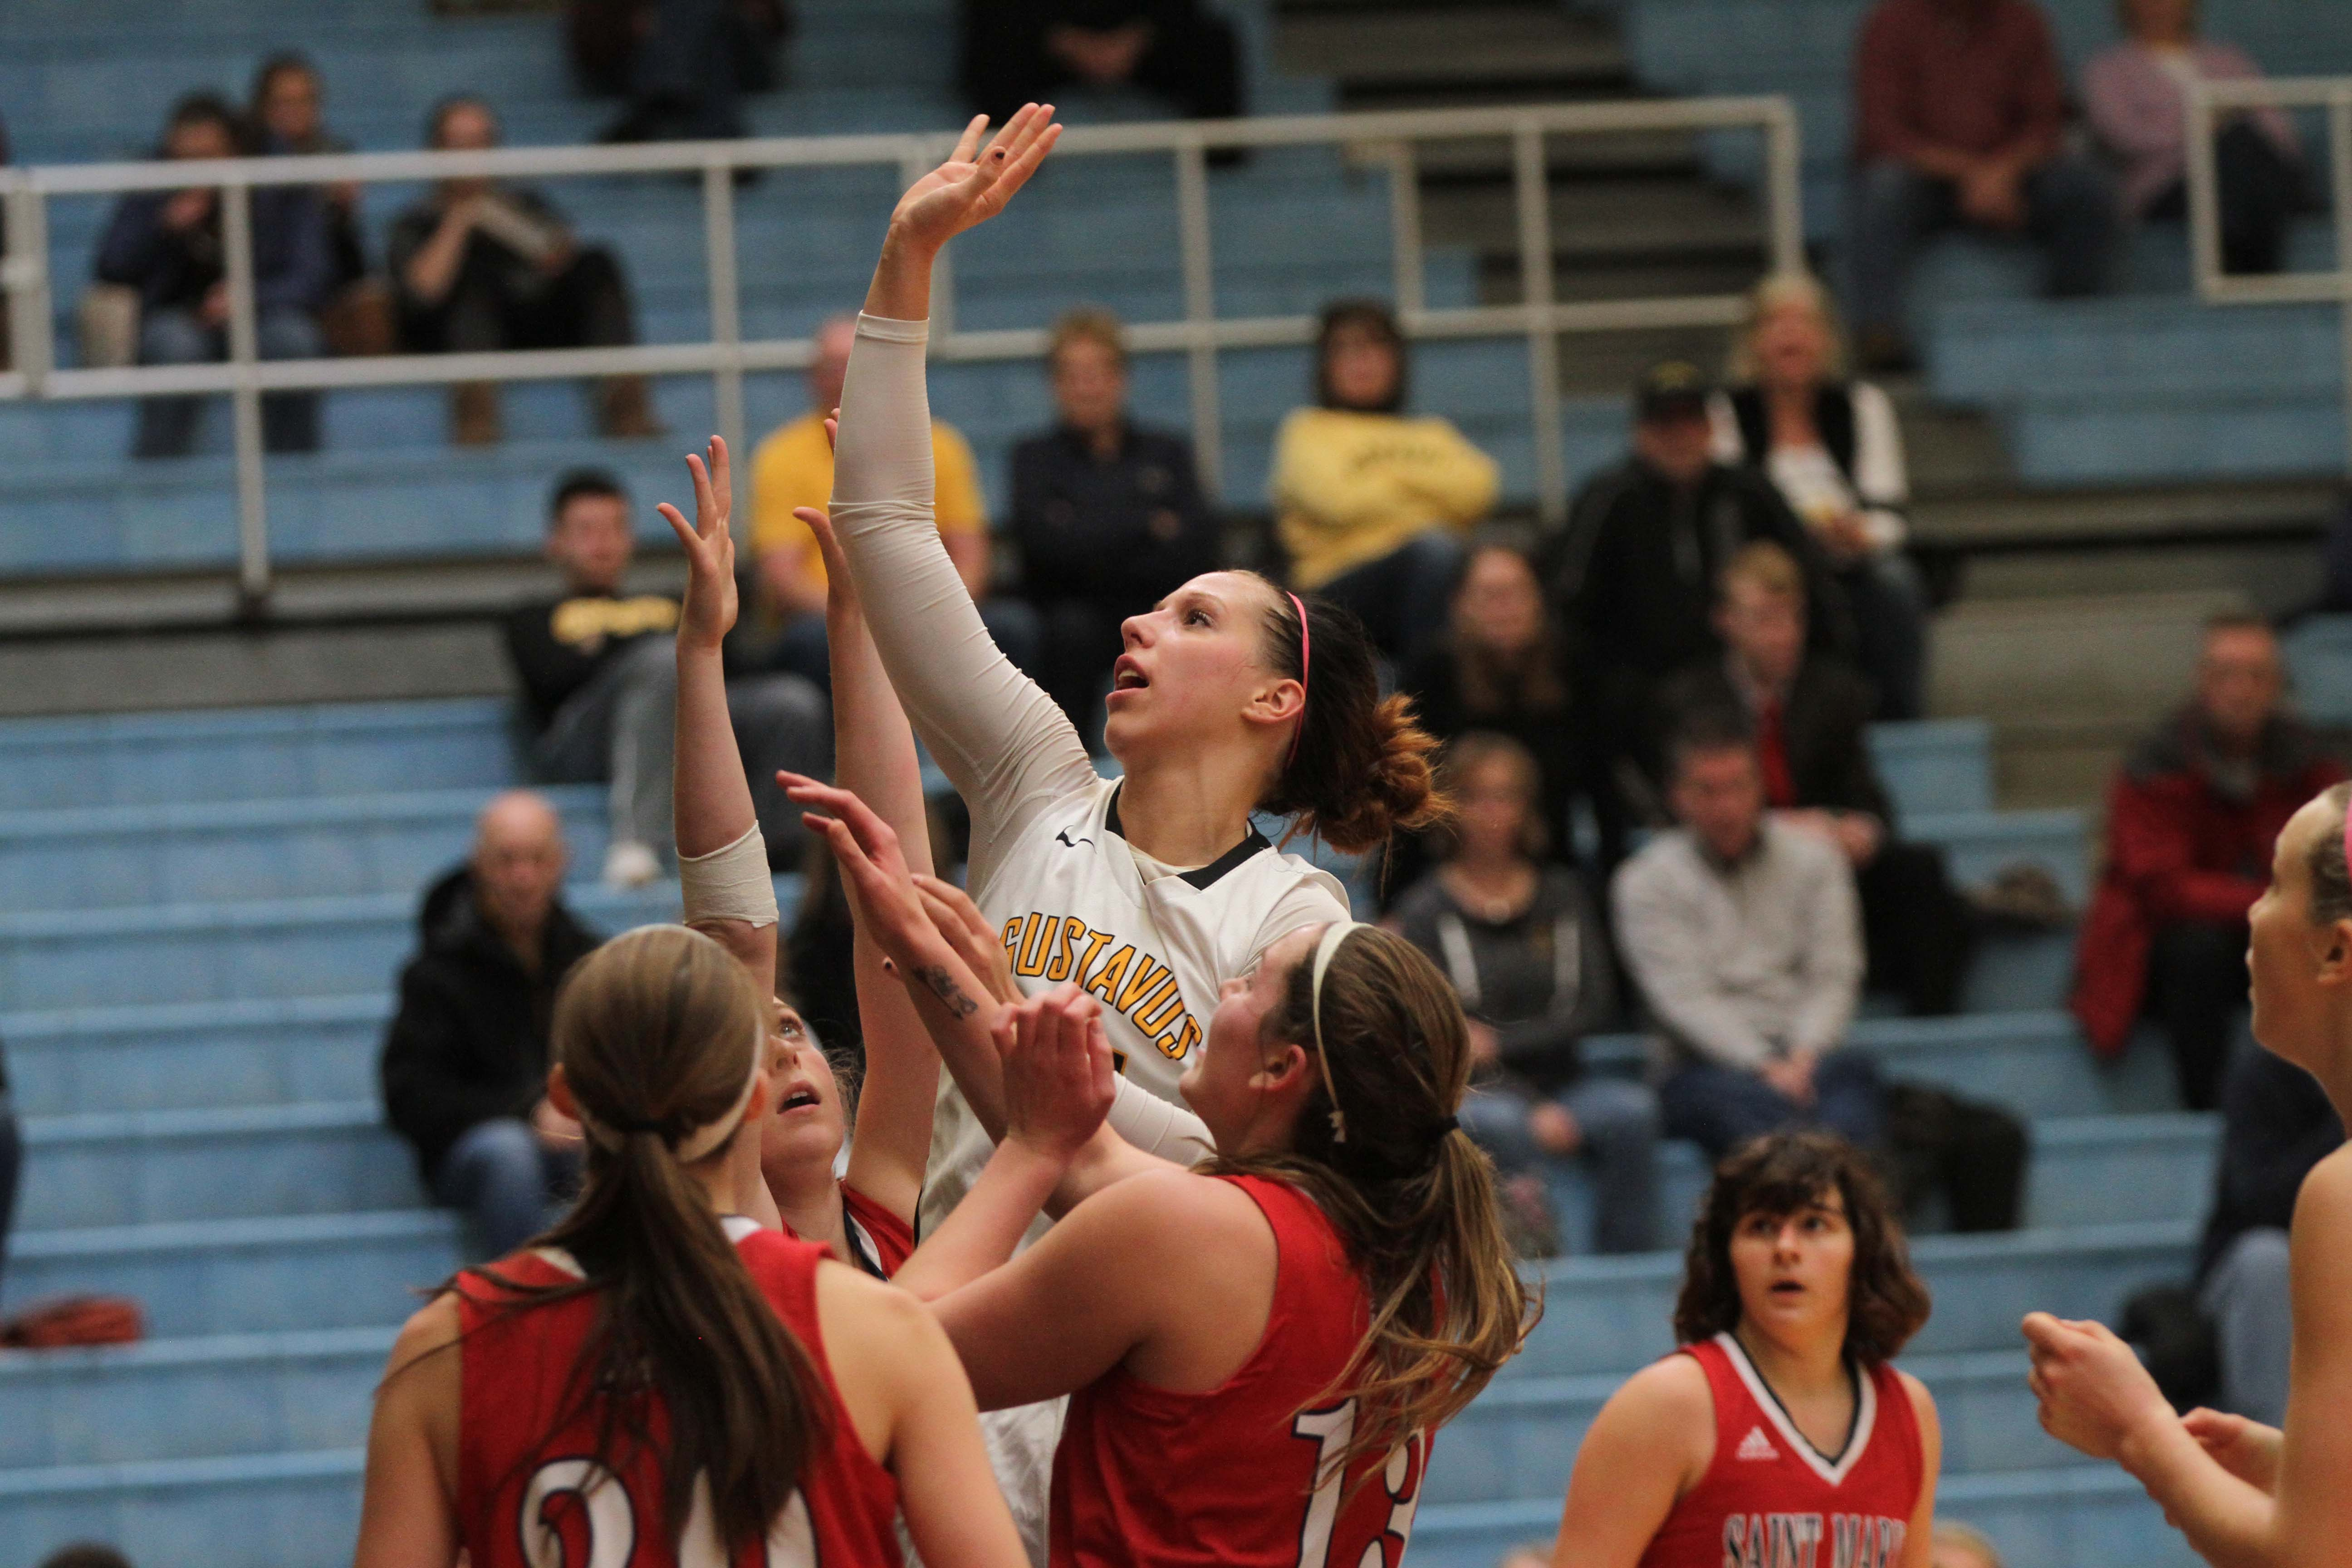 Sophomore Paige Richert attempts to tip the ball into the basket under pressure from three St. Mary's opponents.